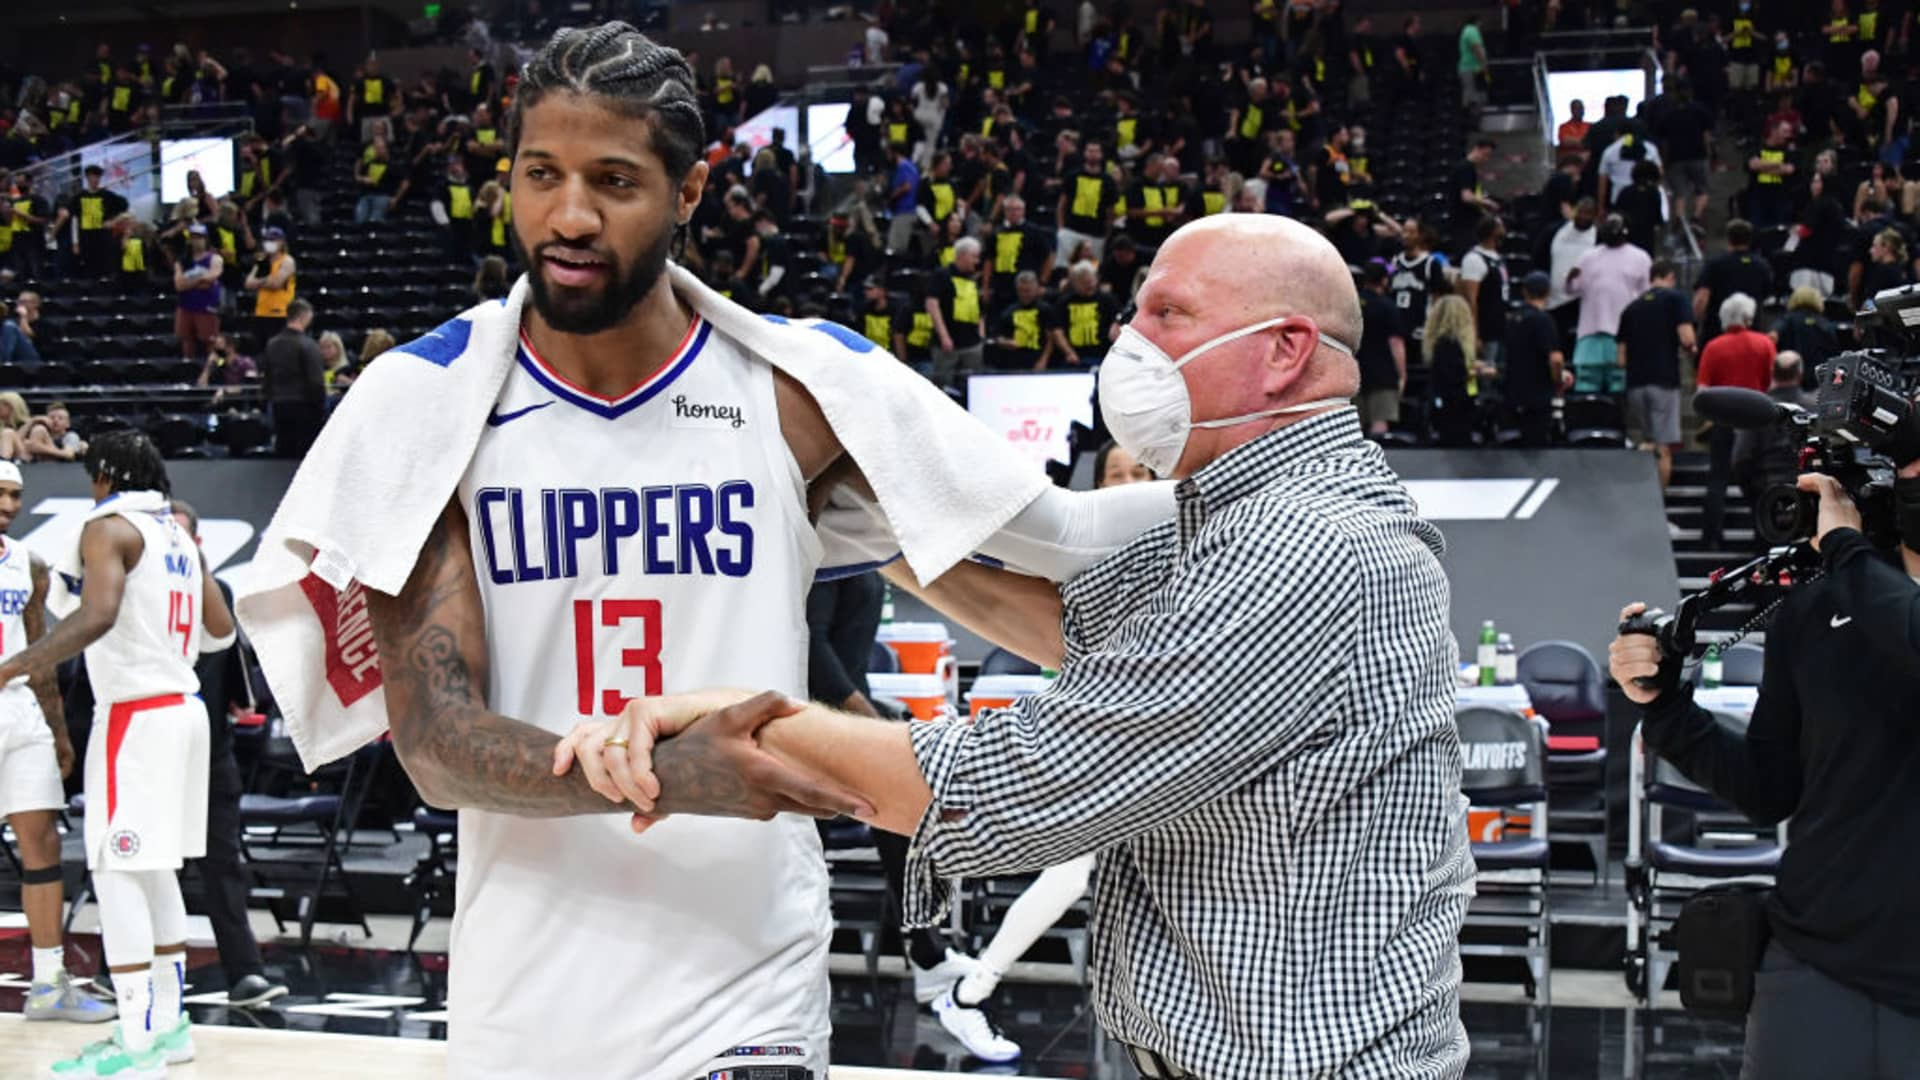 Paul George #13 of the LA Clippers talks to Owner, Steve Ballmer of the LA Clippers after the game against the Utah Jazz during Round 2, Game 5 of the 2021 NBA Playoffs on June 16, 2021 at vivint.SmartHome Arena in Salt Lake City, Utah.